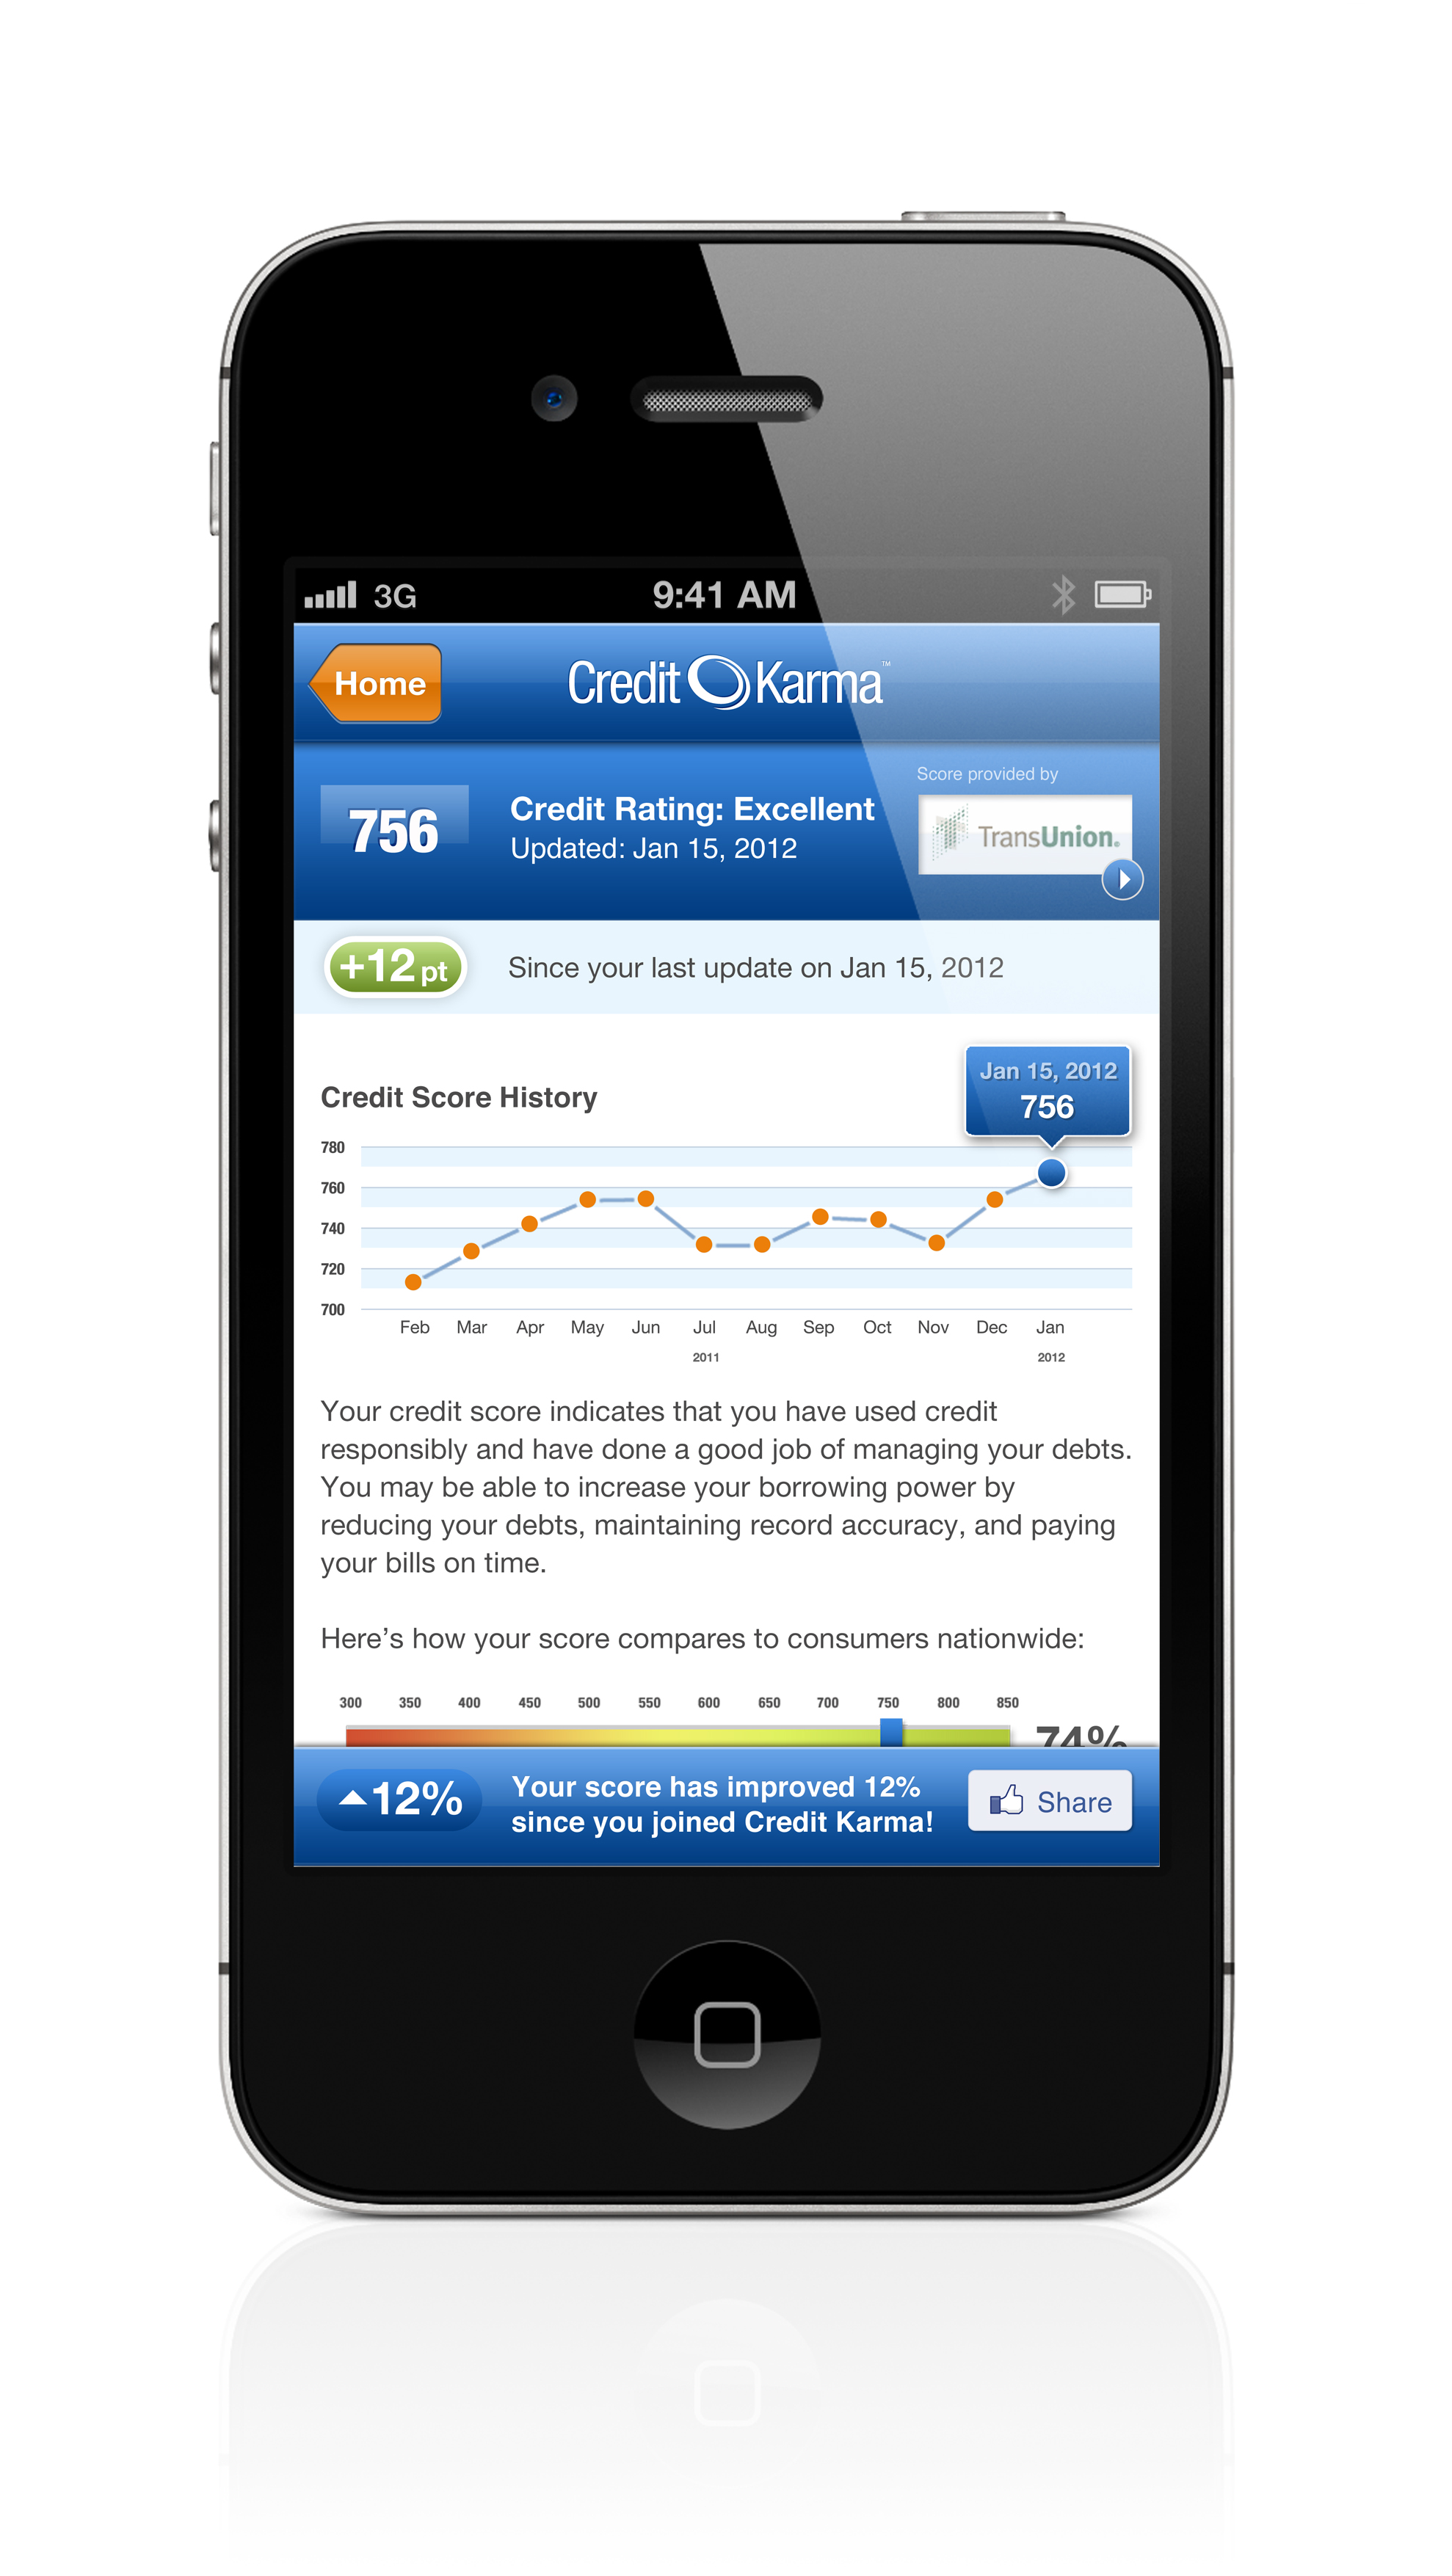 Credit Karma Mobile